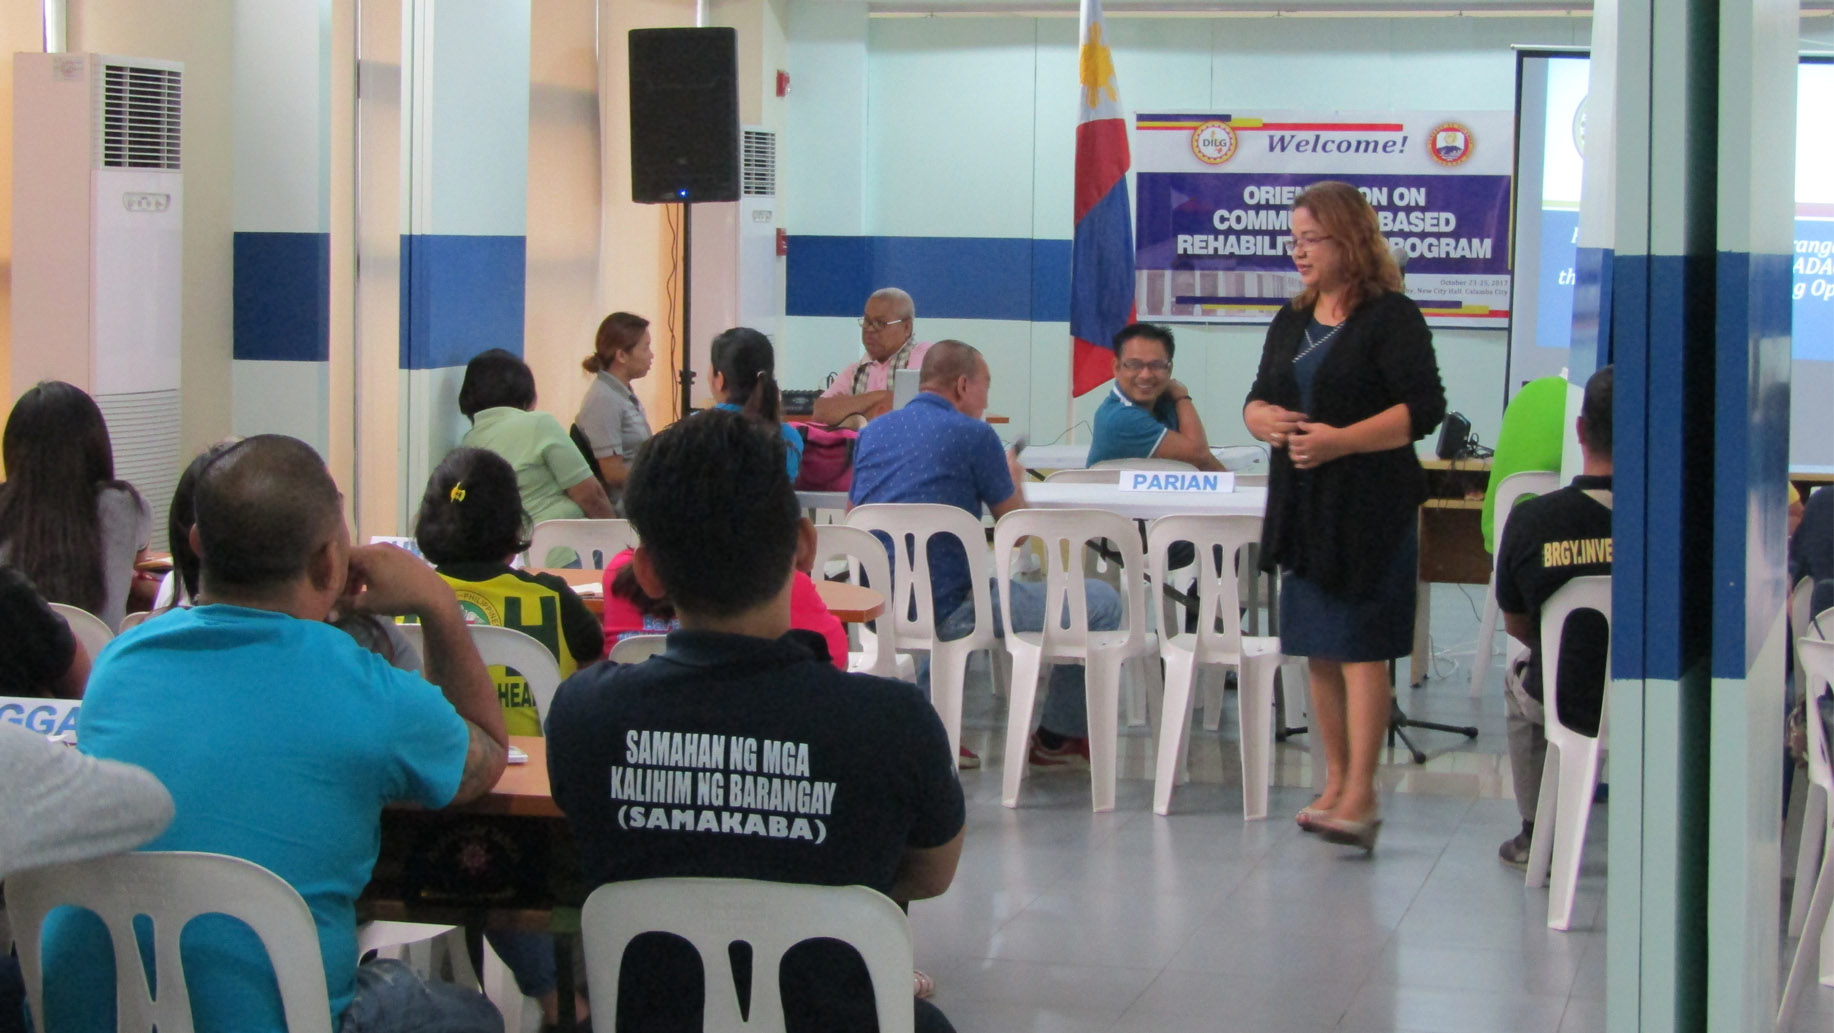 Orientation on Community-Based Rehabilitation Program, isinagawa ng DILG